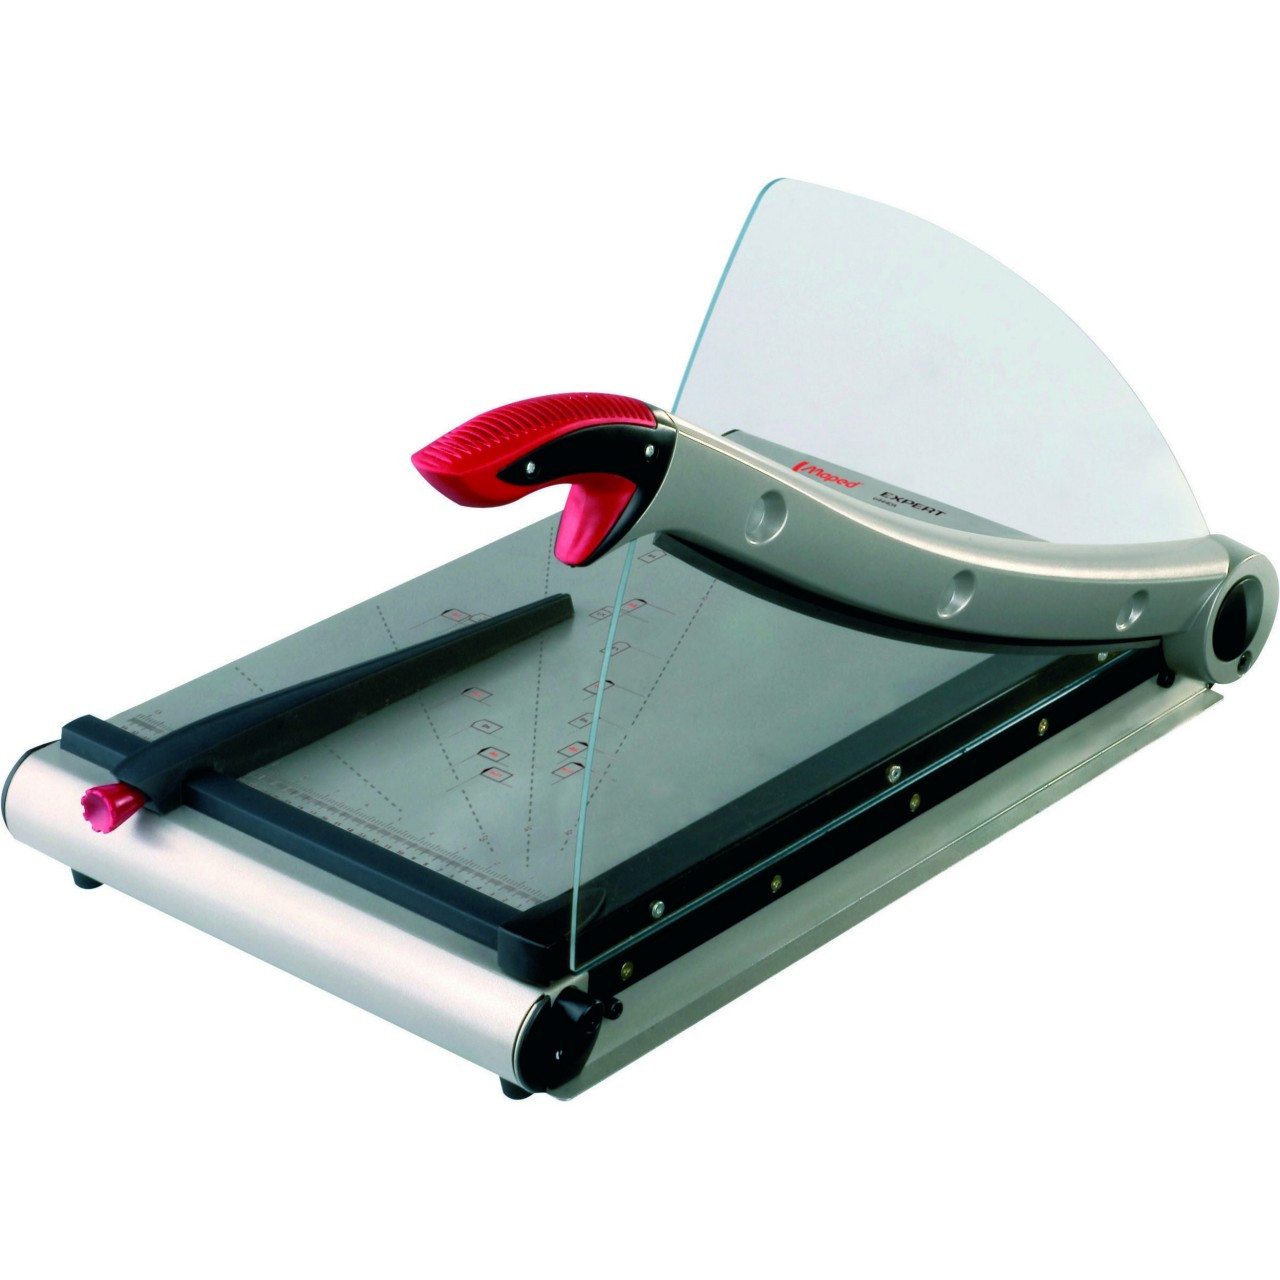 Maped 889110 A3 35 Sheet Automatic Guillotine